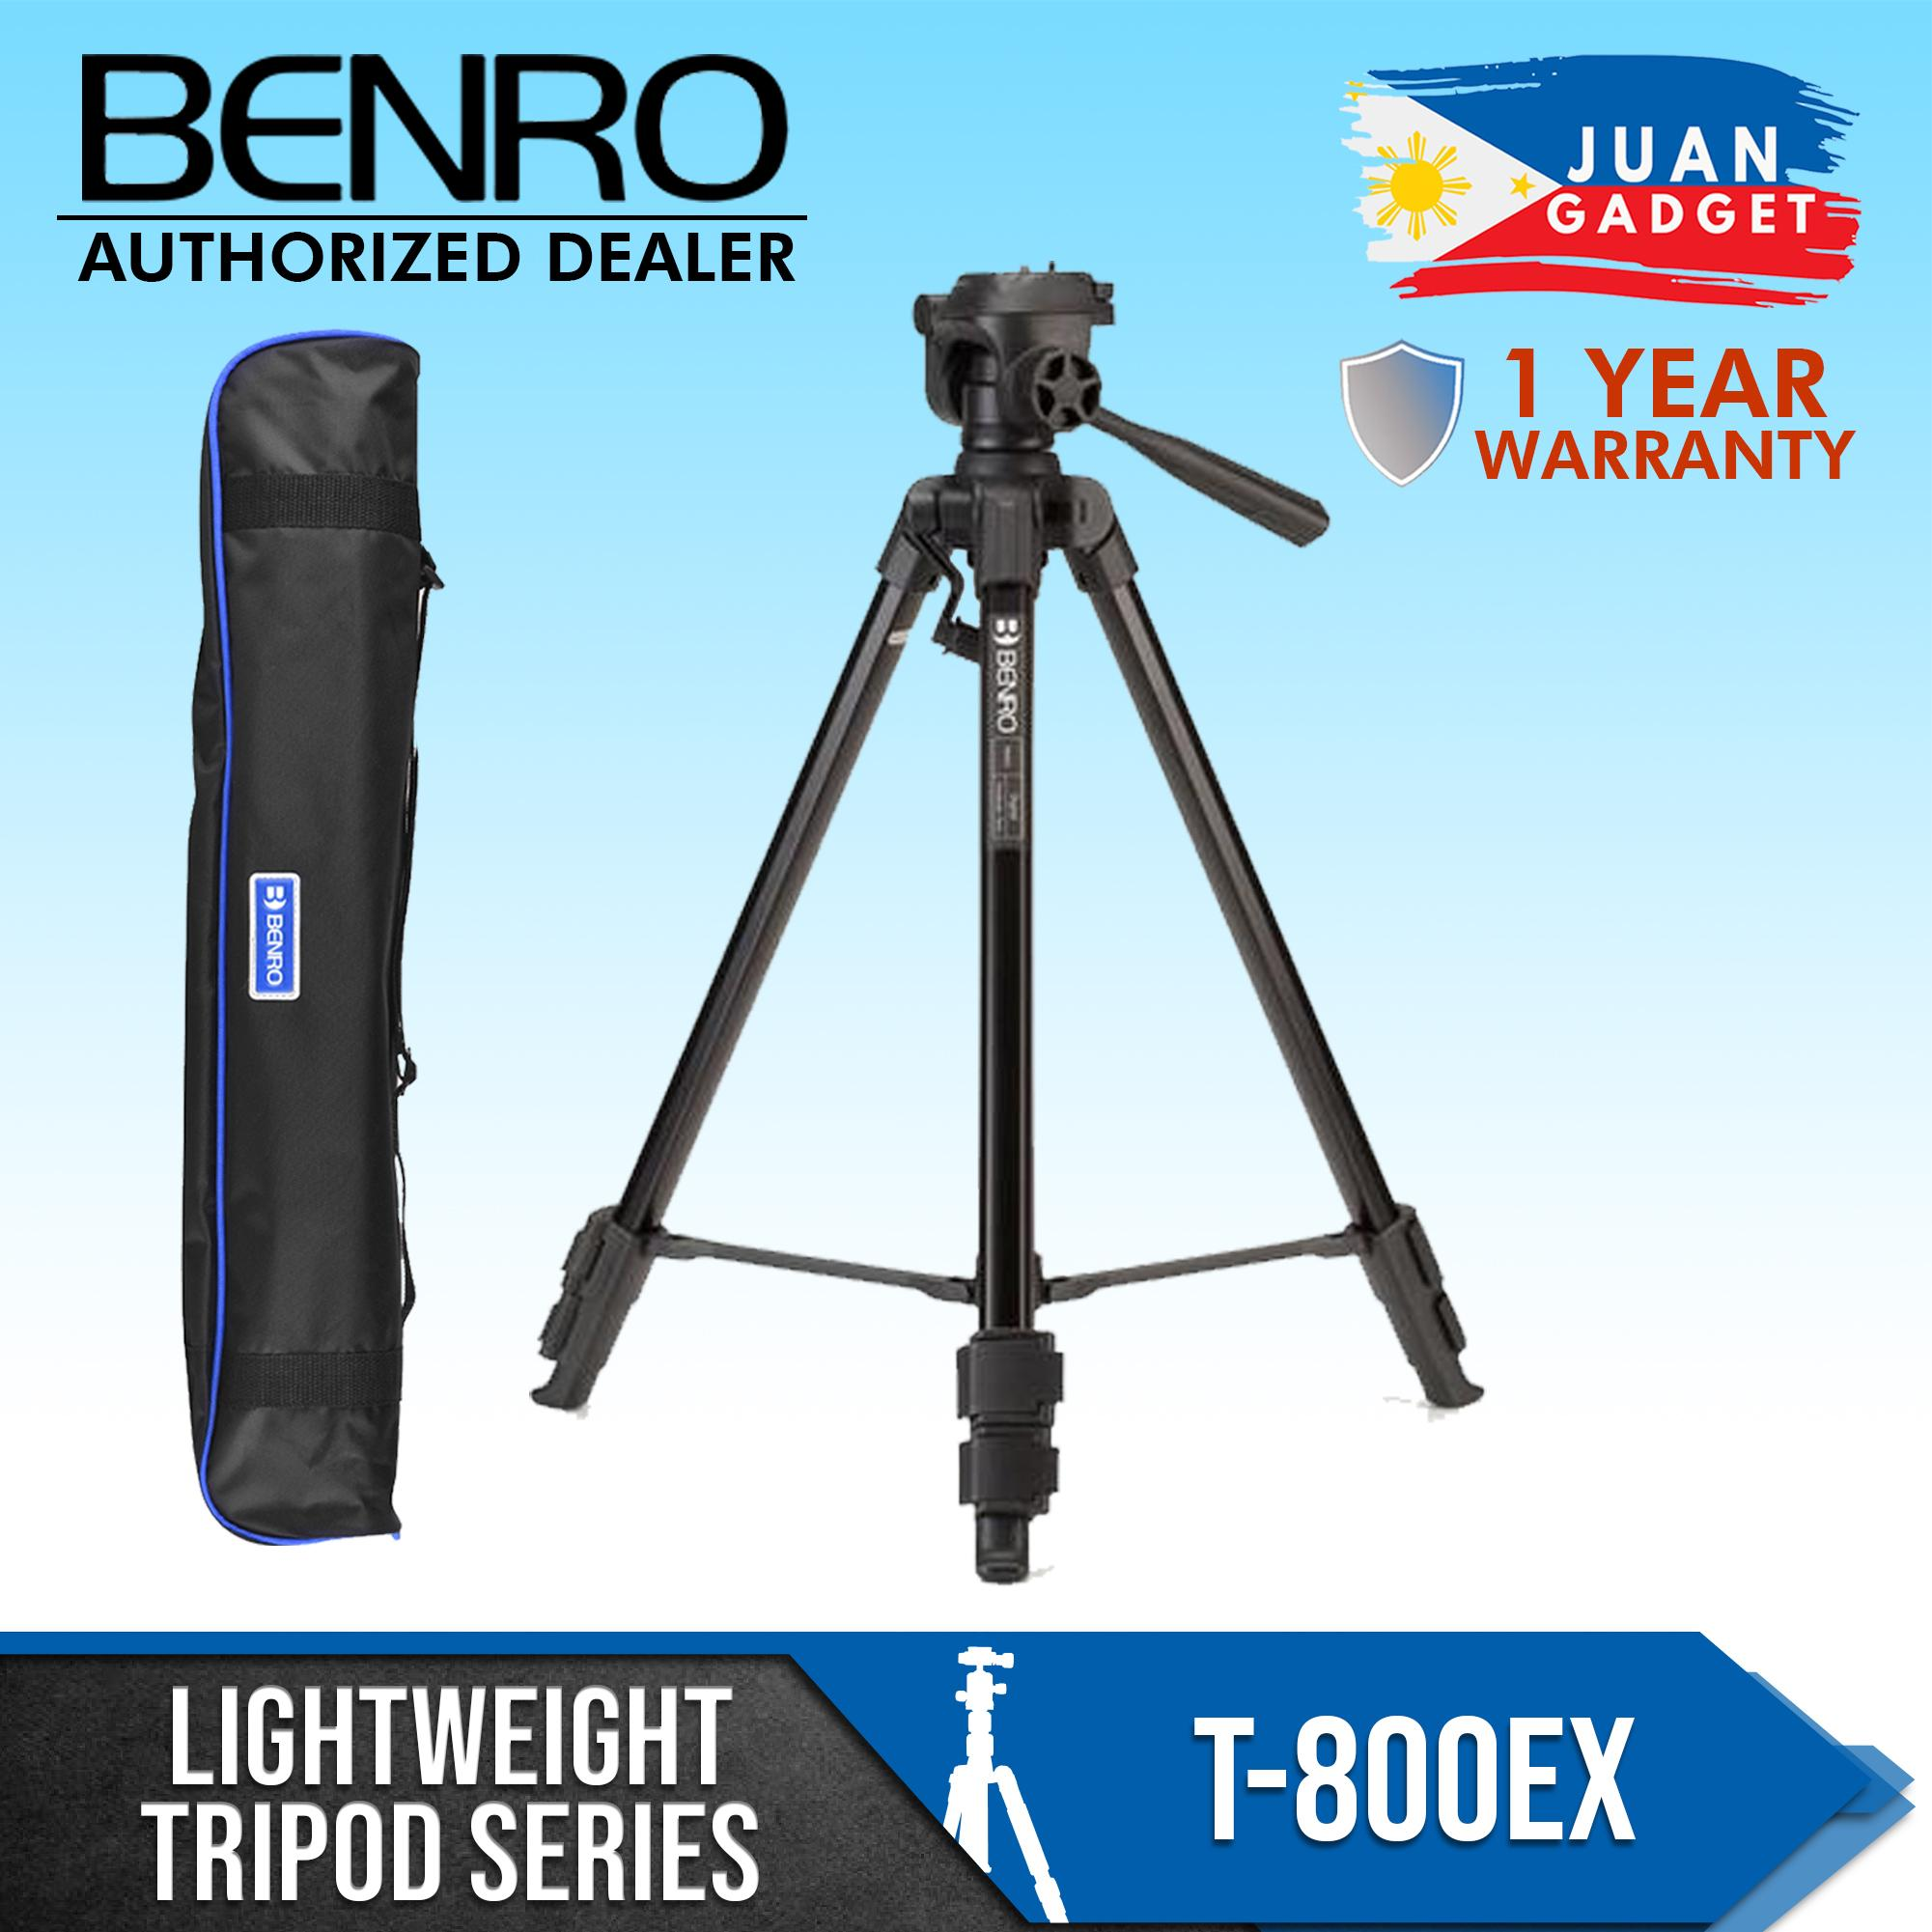 Benro T-800EX Tripod Kit Lightweight Series for DSLR 1 Year Warranty T800EX